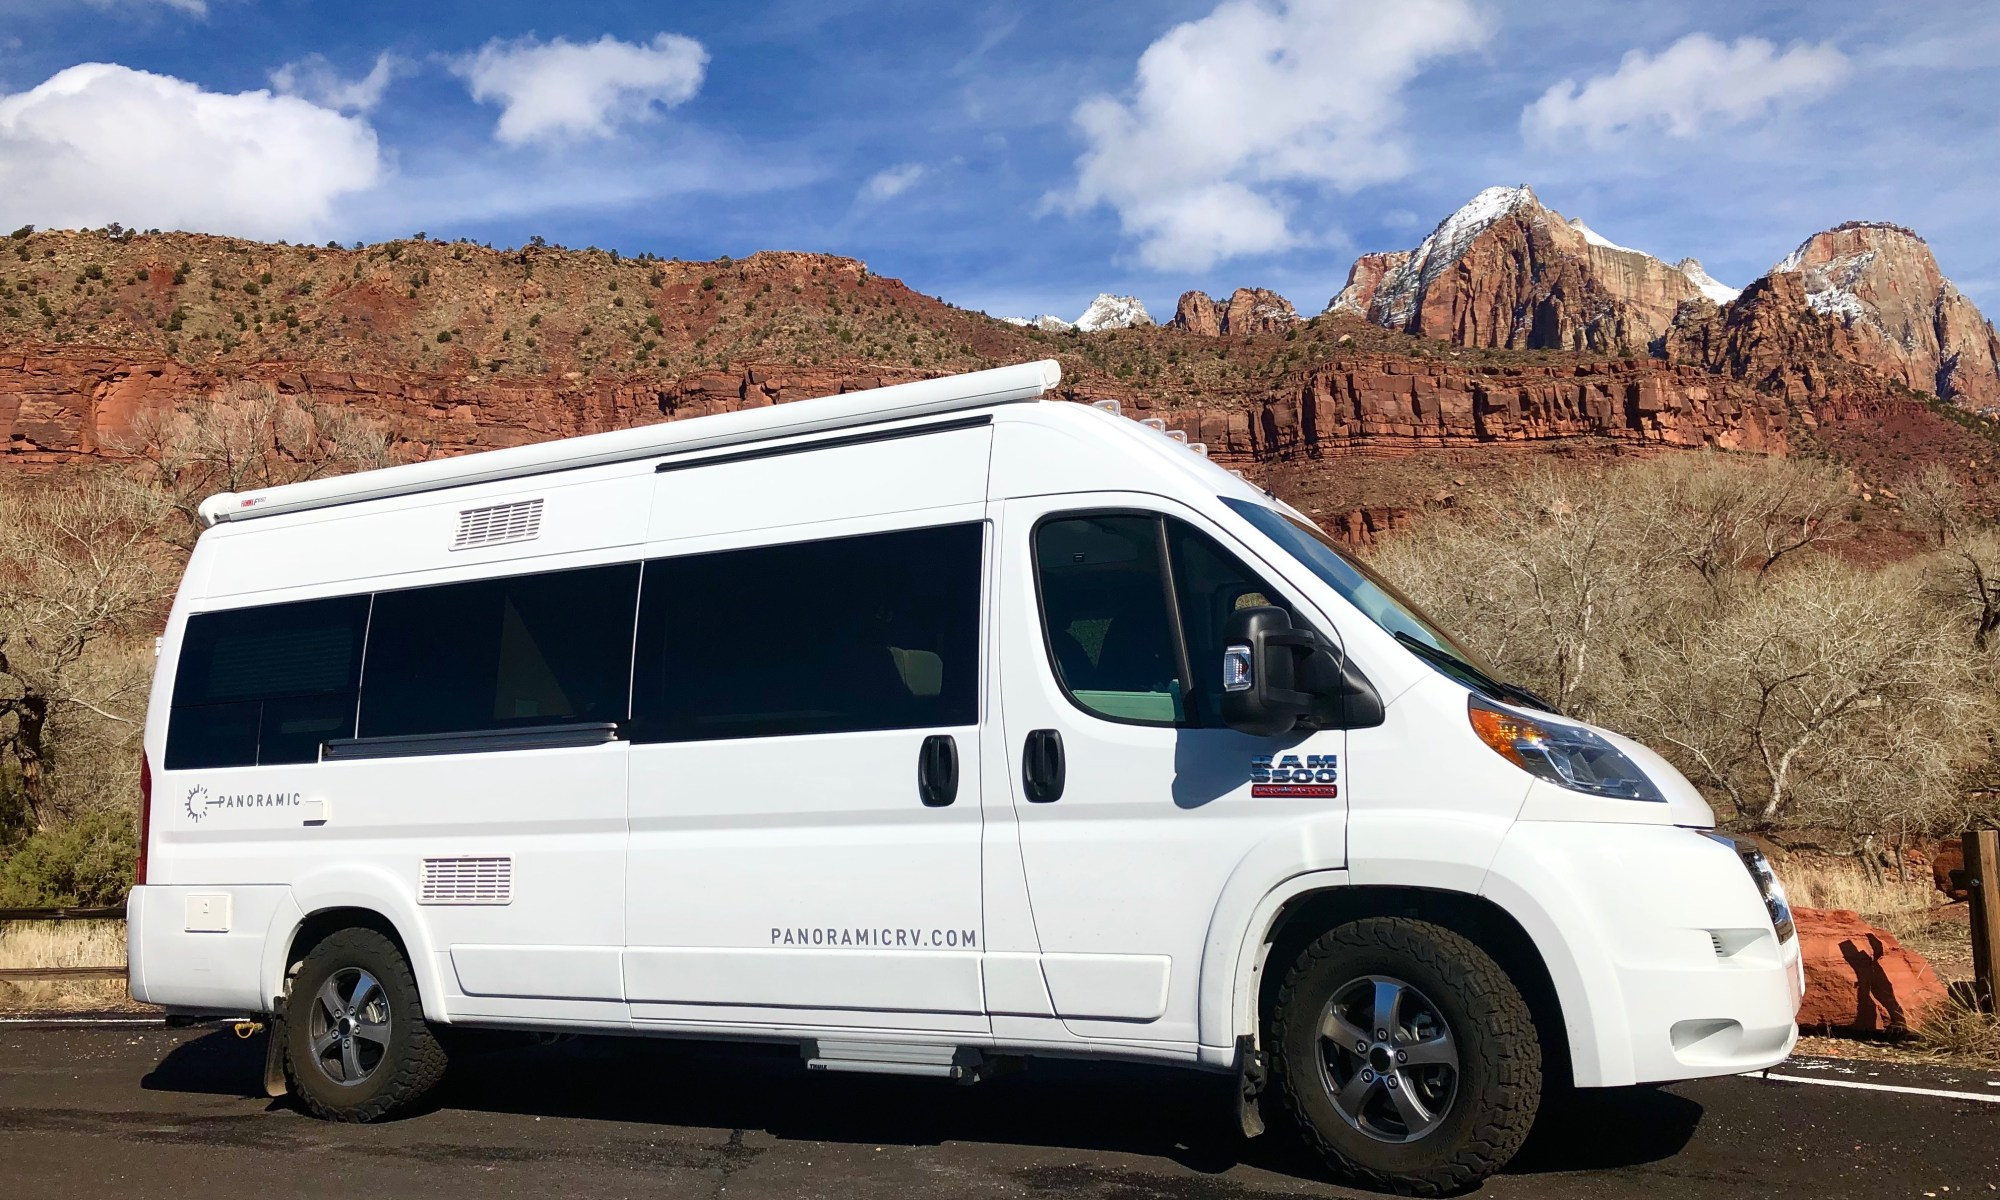 Panoramic RV - USA - 1